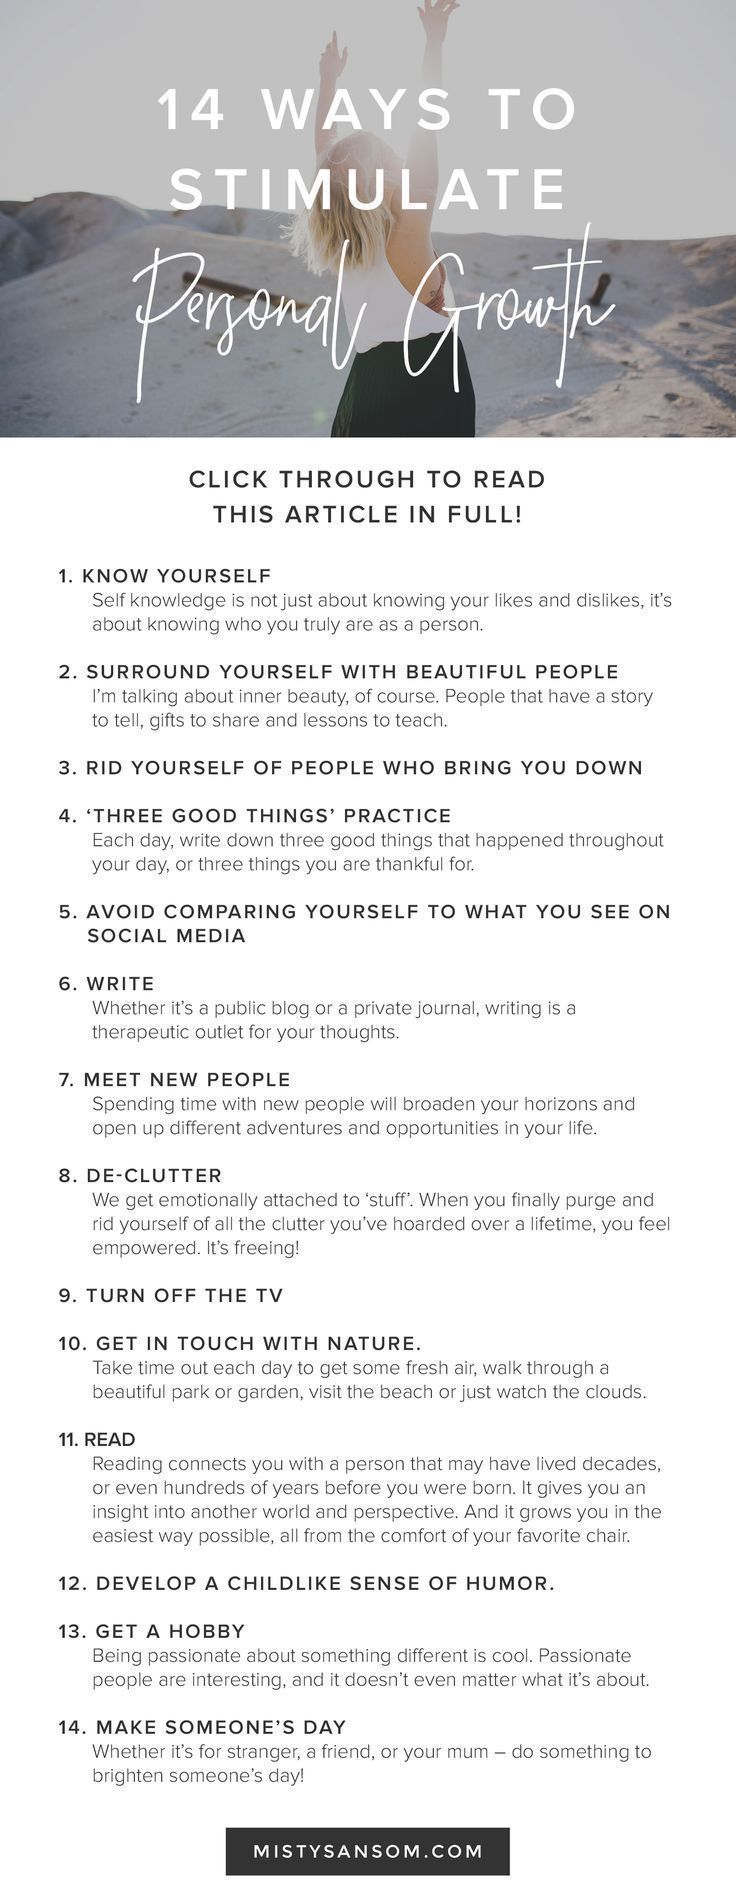 14 Ways to Stimulate Personal Growth — Misty Sansom #lifegoals